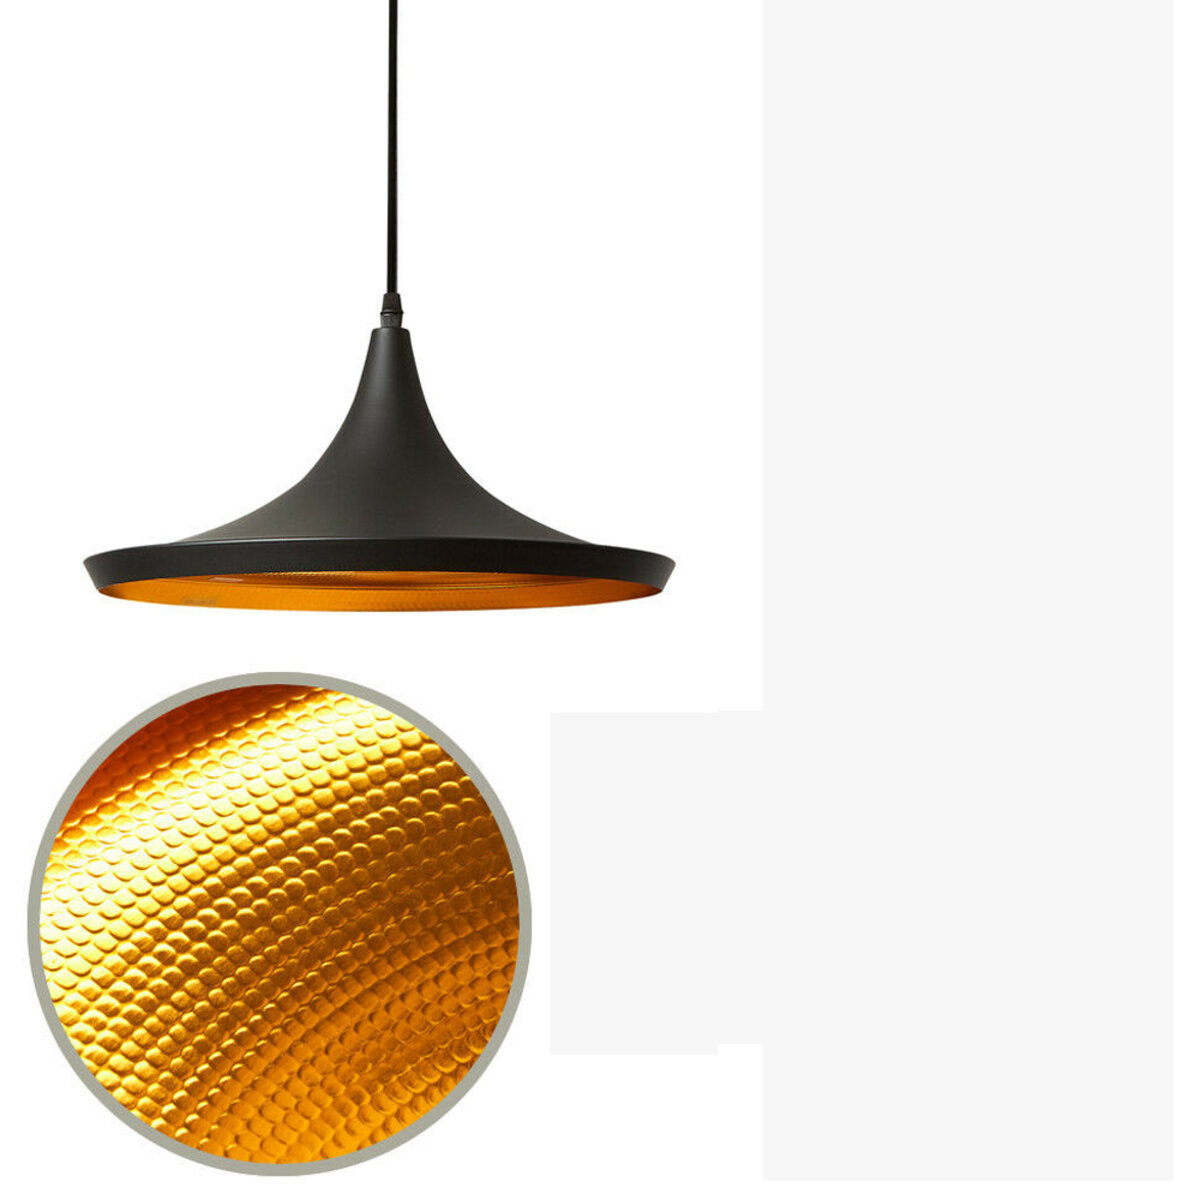 Details About Pendant Light Led Ceiling Lights Lamp Shade Industrial Cafe Lighting Kitchen Bar Pertaining To Akash Industrial Vintage 1 Light Geometric Pendants (View 11 of 30)